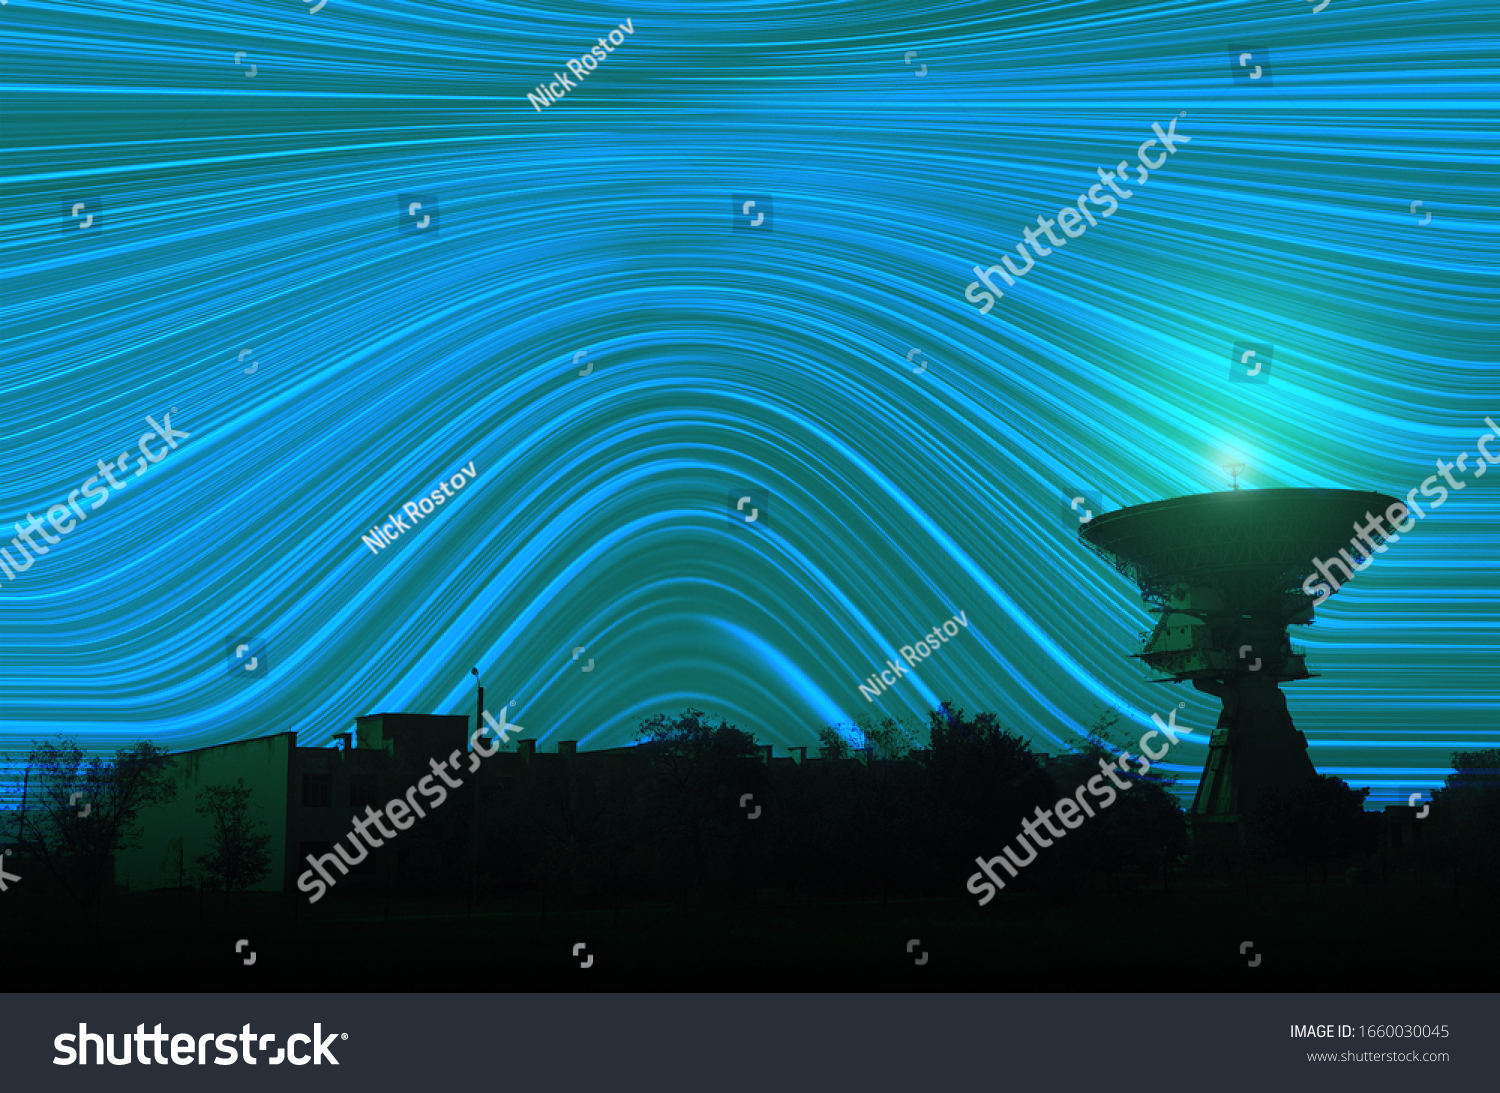 USSR Receiving antenna. Soviet high-precision radio telescope for long-range space communications at night in Zaozernoye, Crimea. Starry sky, long exposure effect. Abstract background.